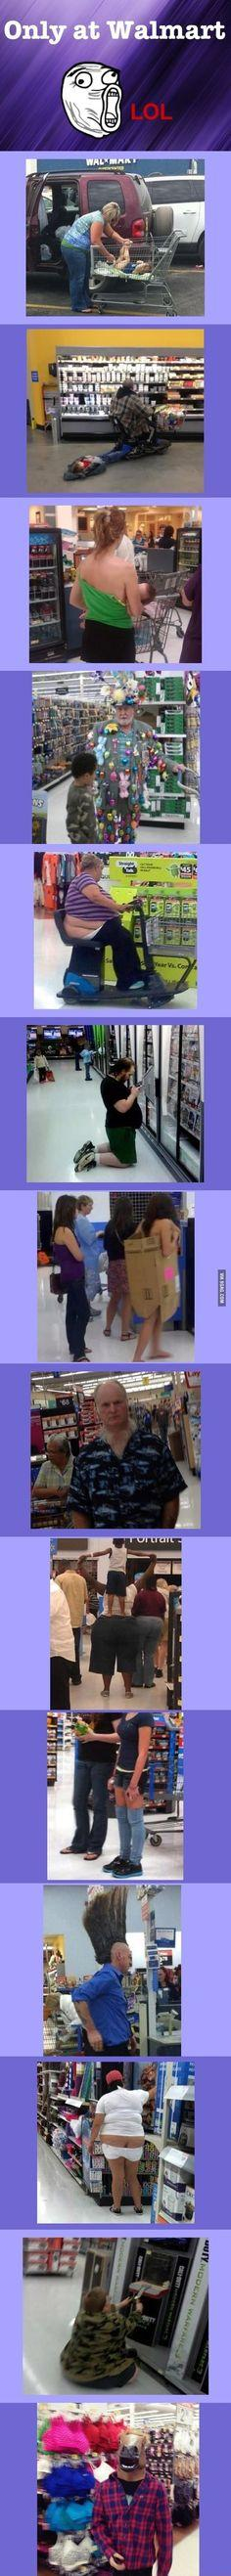 Only at Walmart: Funny Pictures, Mcdonald'S, Funny Stuff, Mcdonalds, Wtf, Fast Food, People, Kid